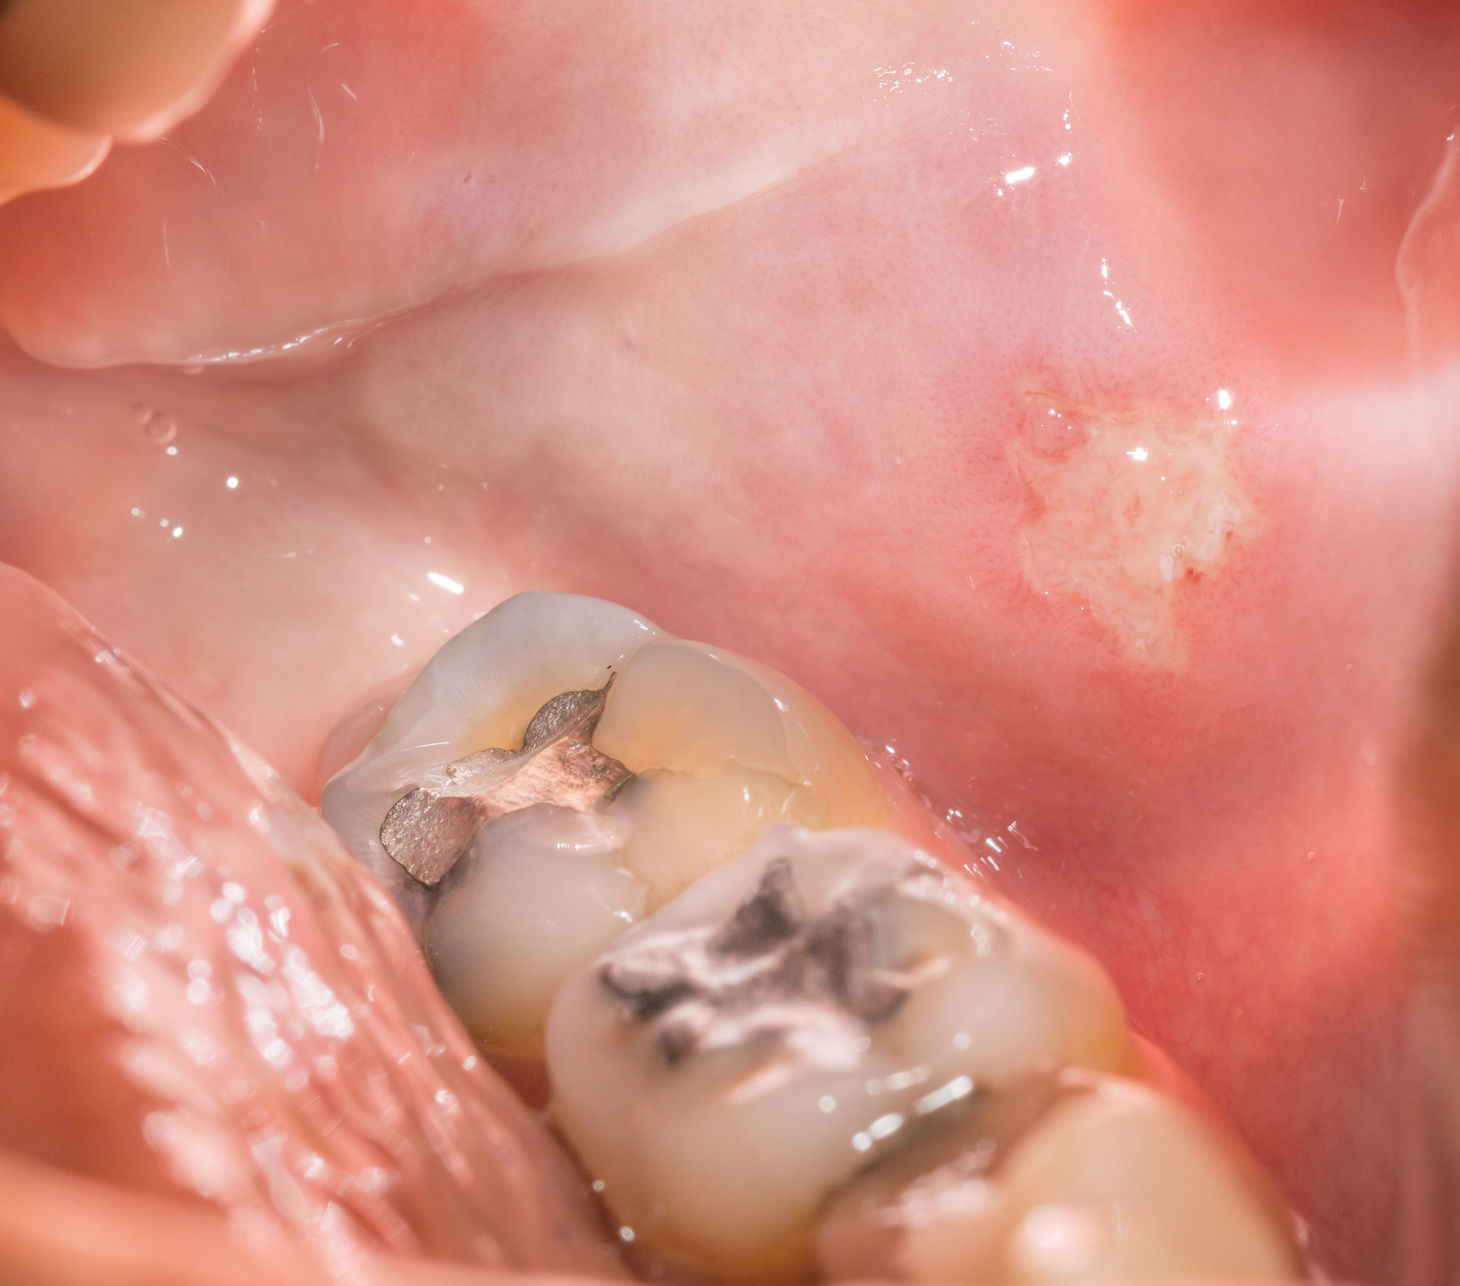 34651833 - closeup view of back tooth and sore, open mouth